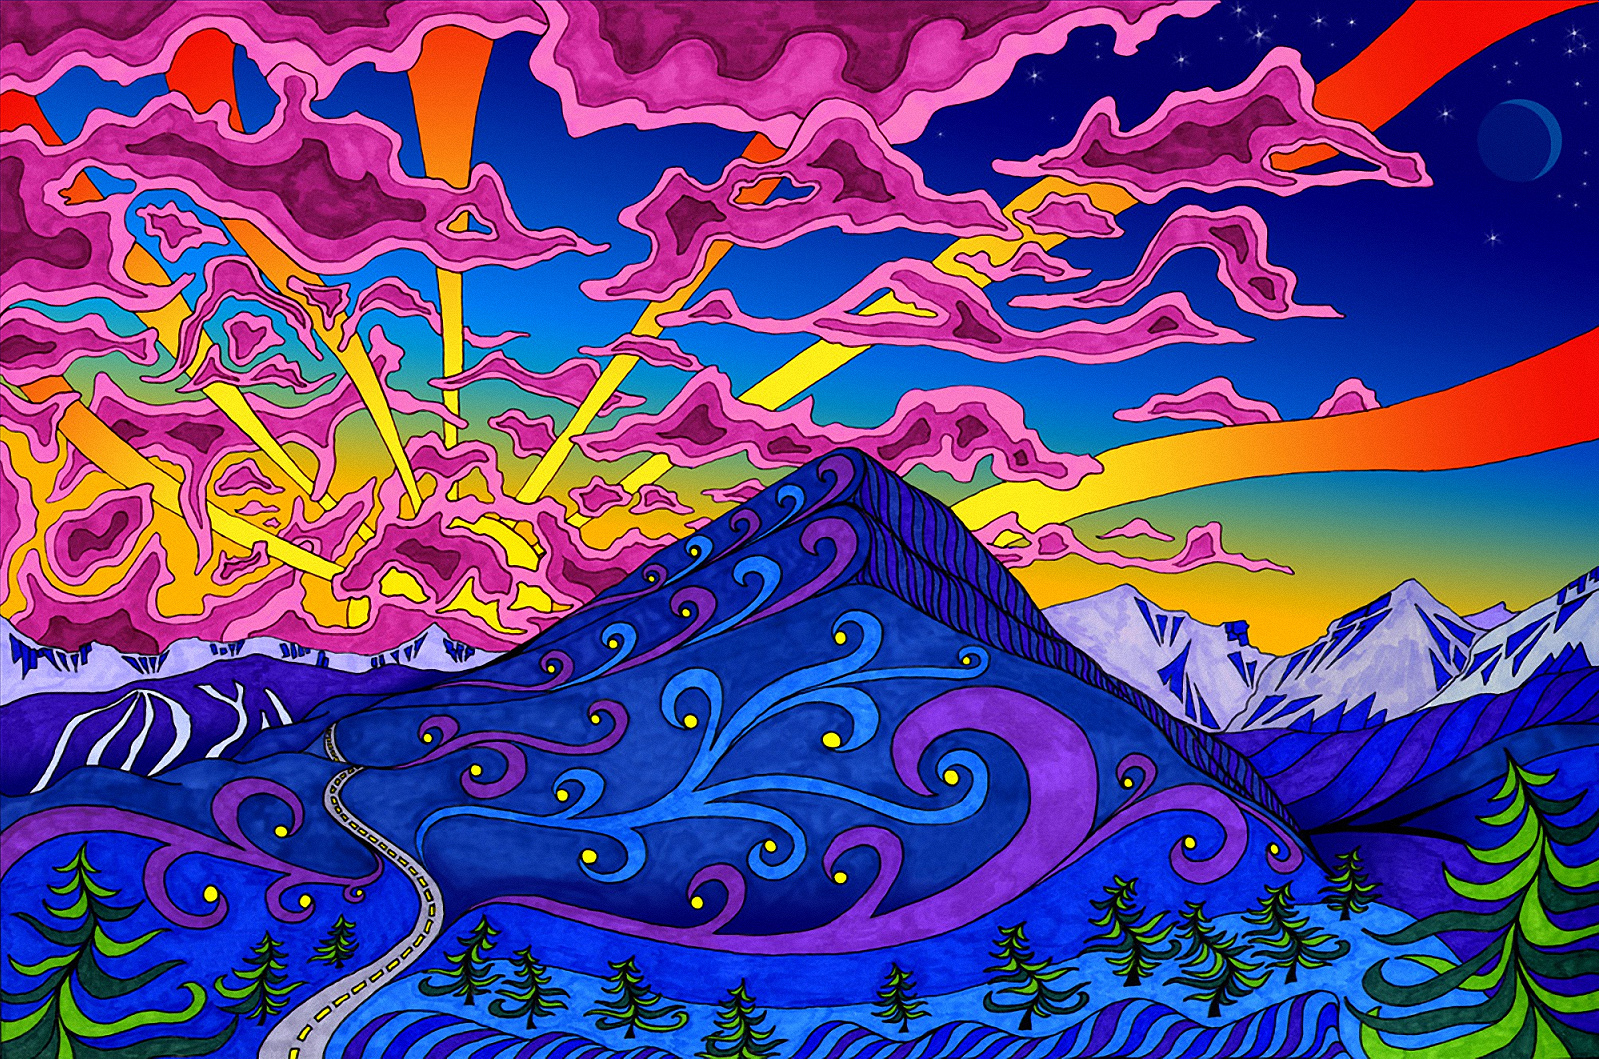 Psychedelic Computer Wallpapers Desktop Backgrounds 1599x1059 ID 1599x1059